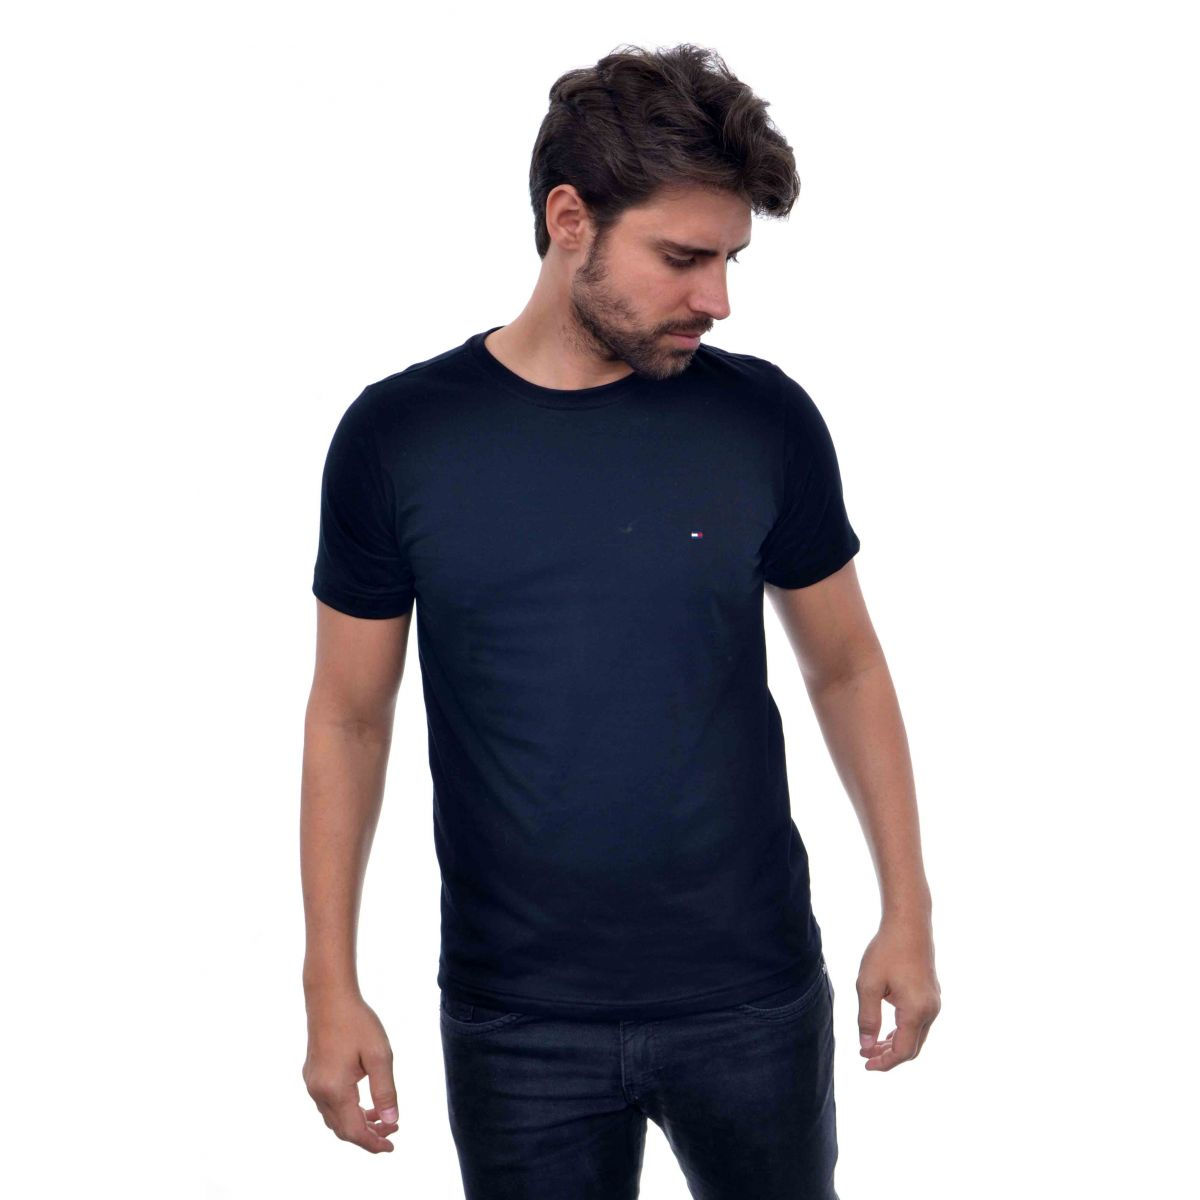 Camiseta Basic TH Azul Marinho